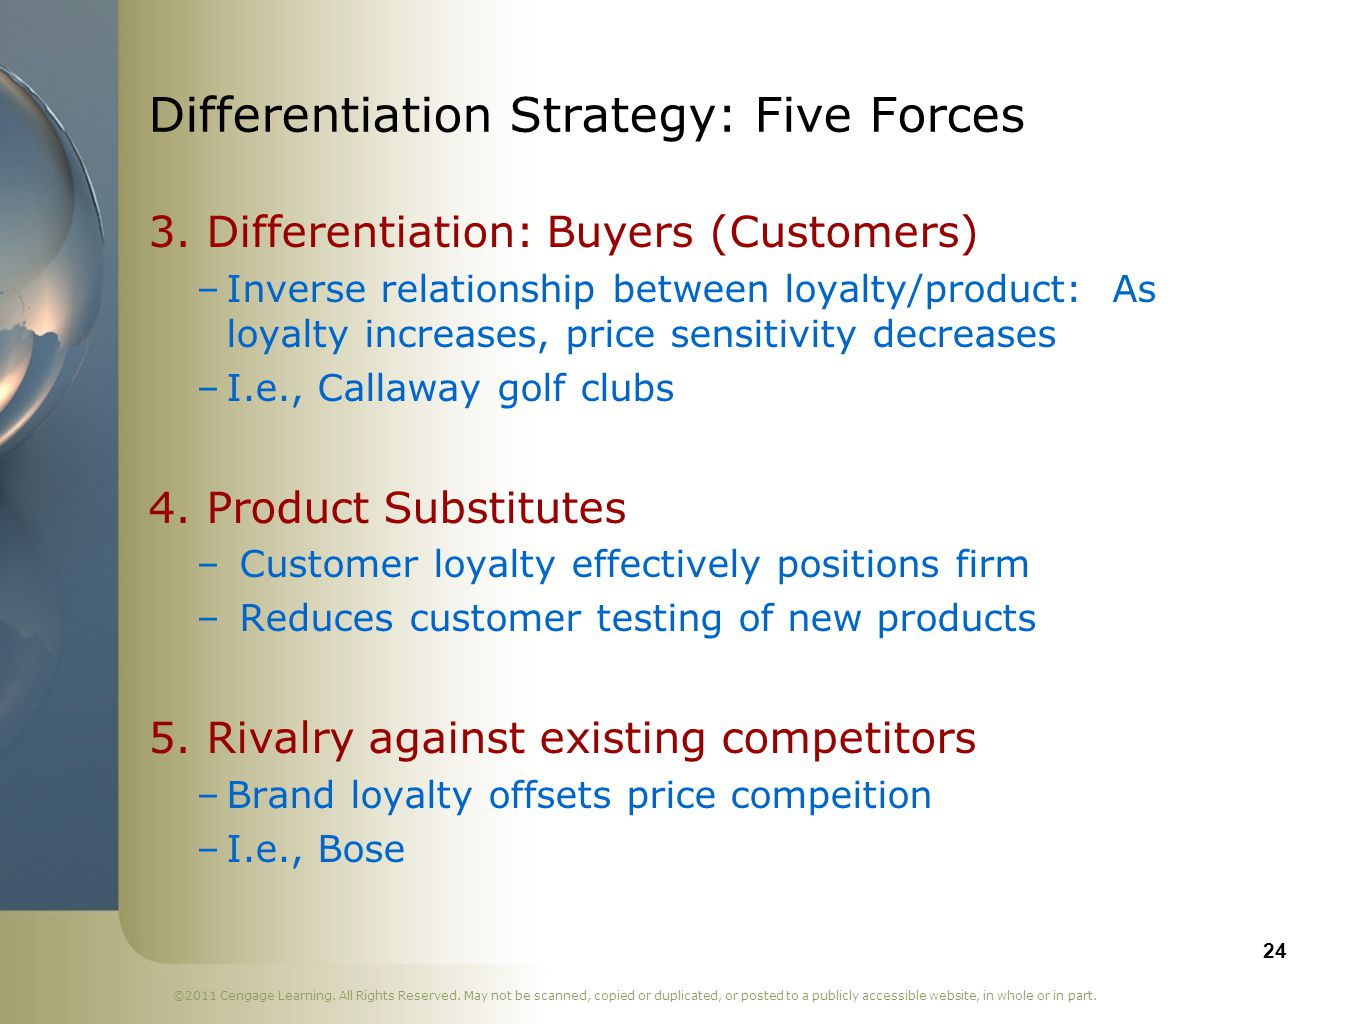 Differentiation Strategy: Five Forces